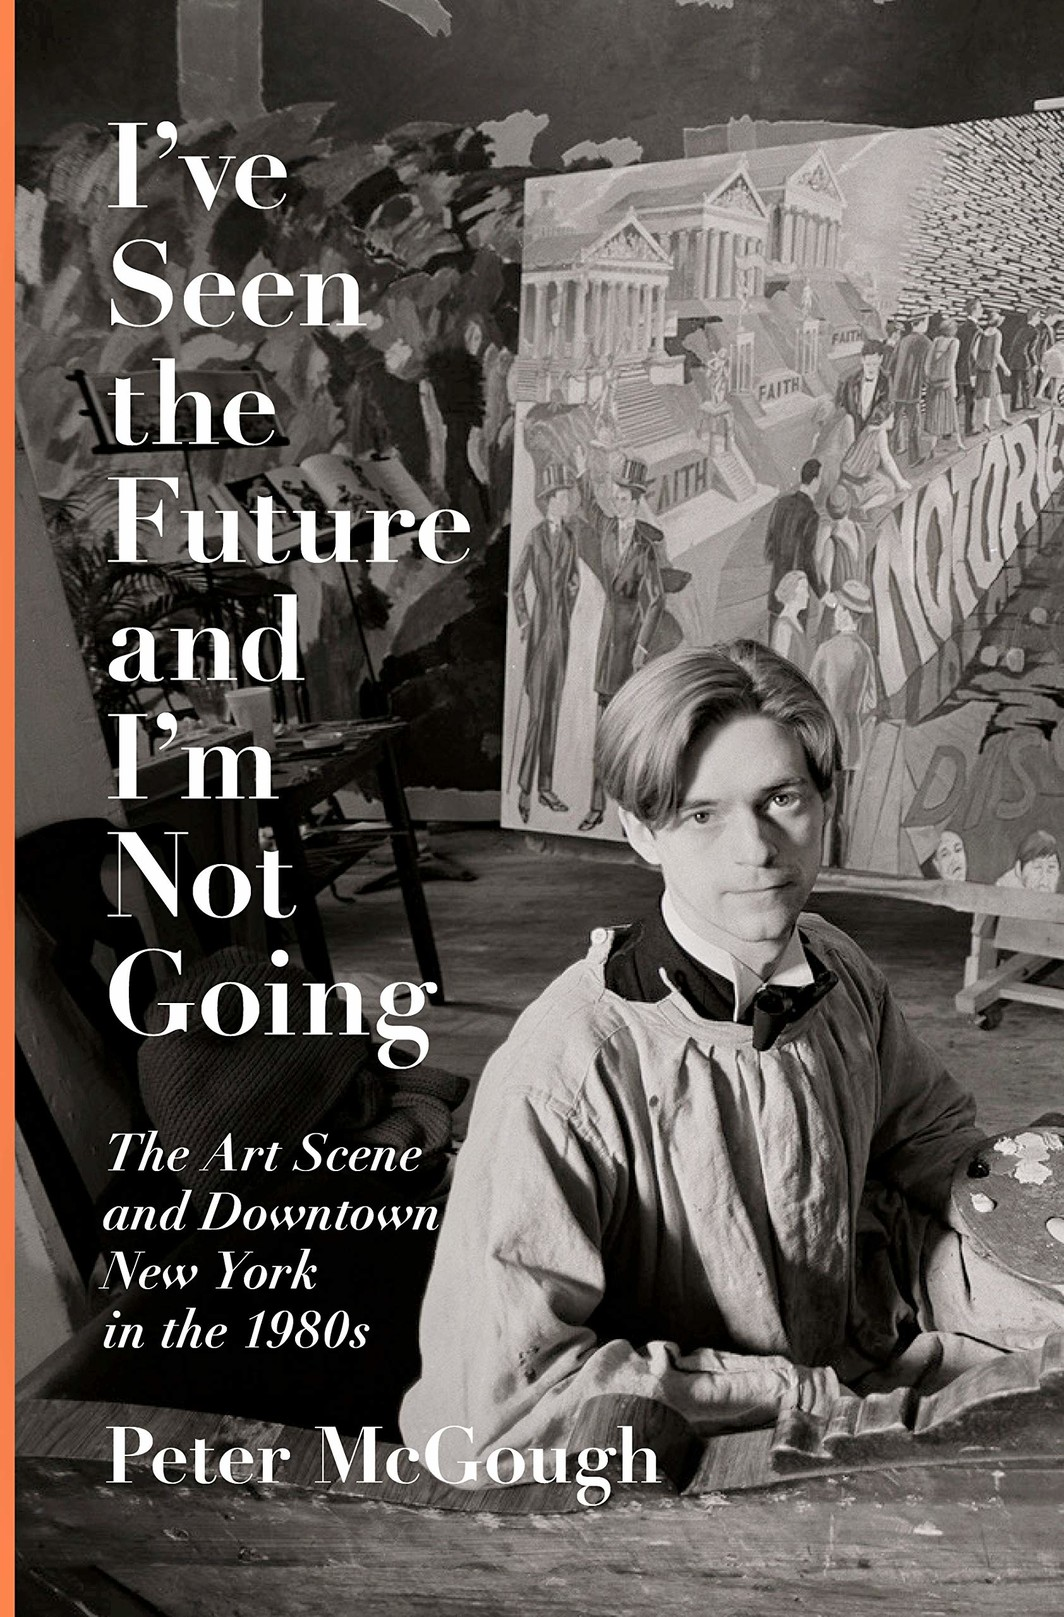 The cover of I've Seen the Future and I'm Not Going: The Art Scene and Downtown New York in the 1980s